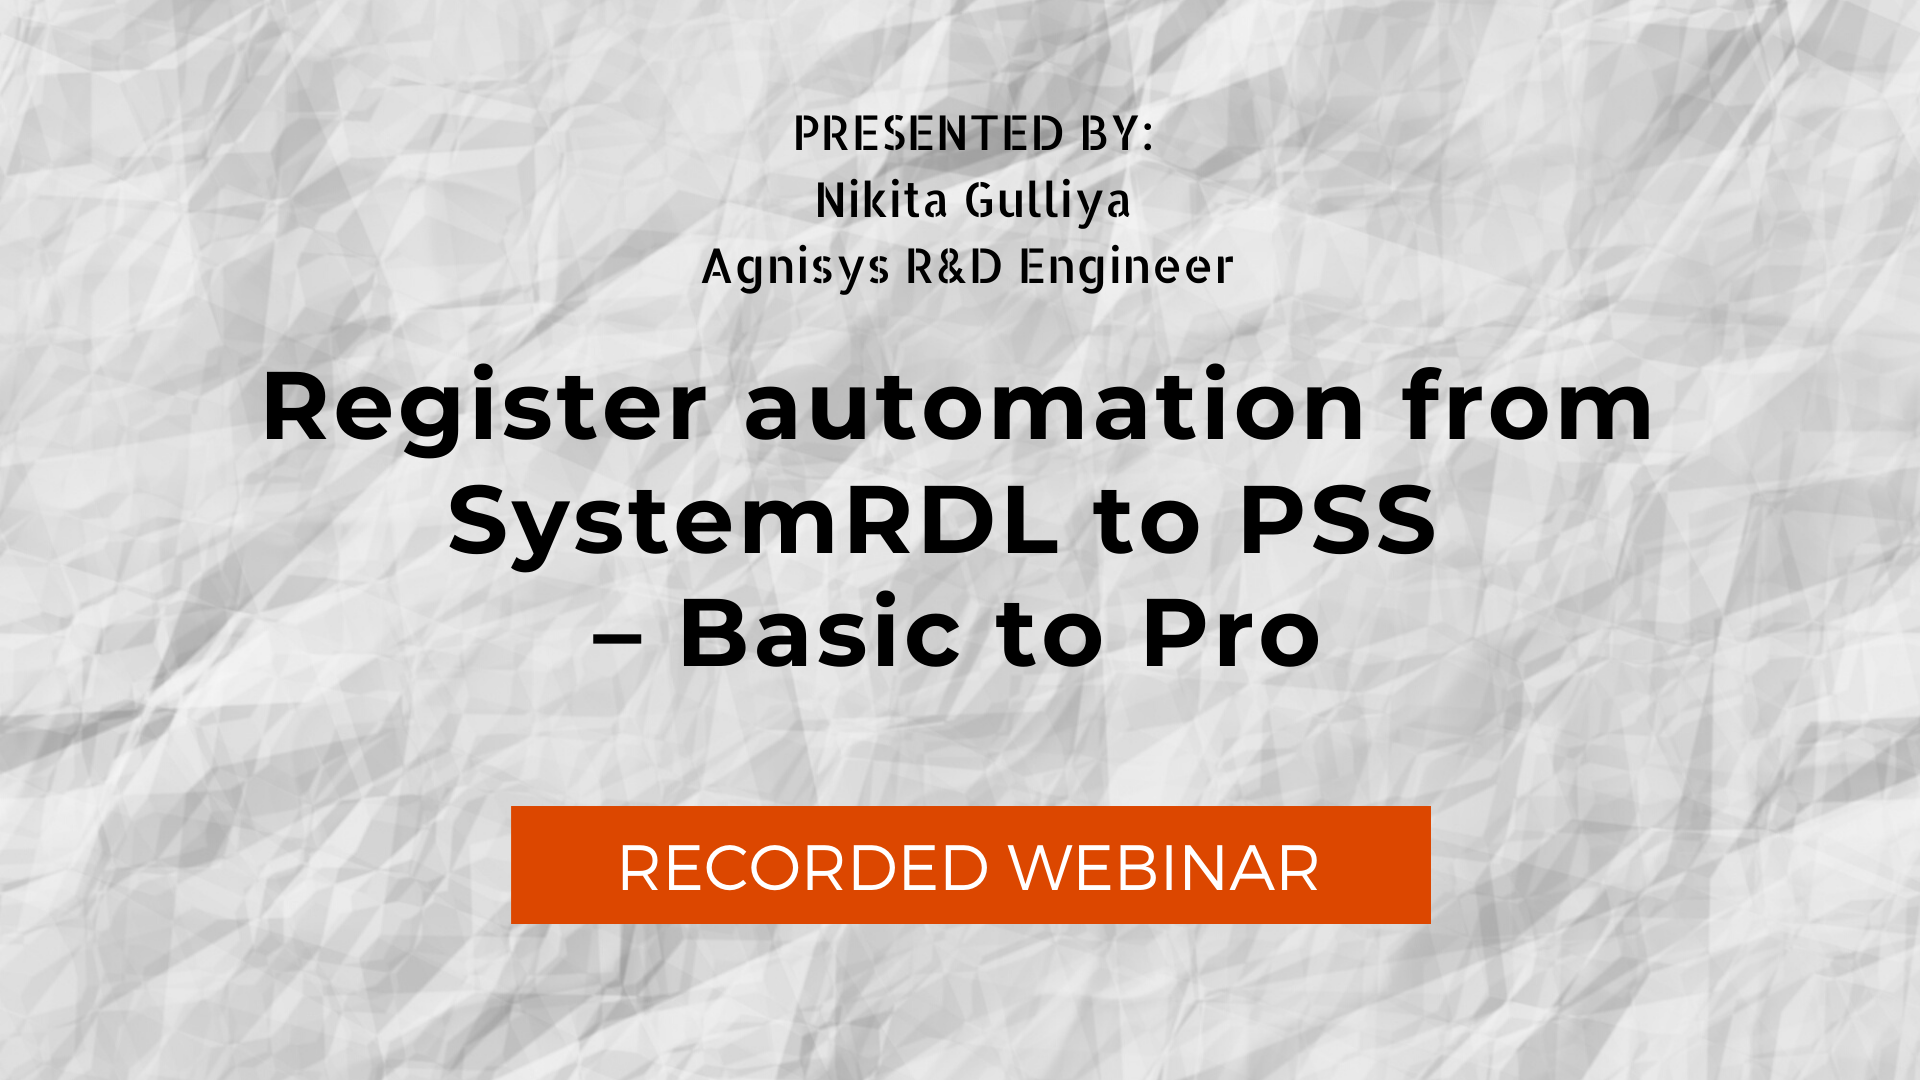 Register automation from SystemRDL to PSS – Basic to Pro